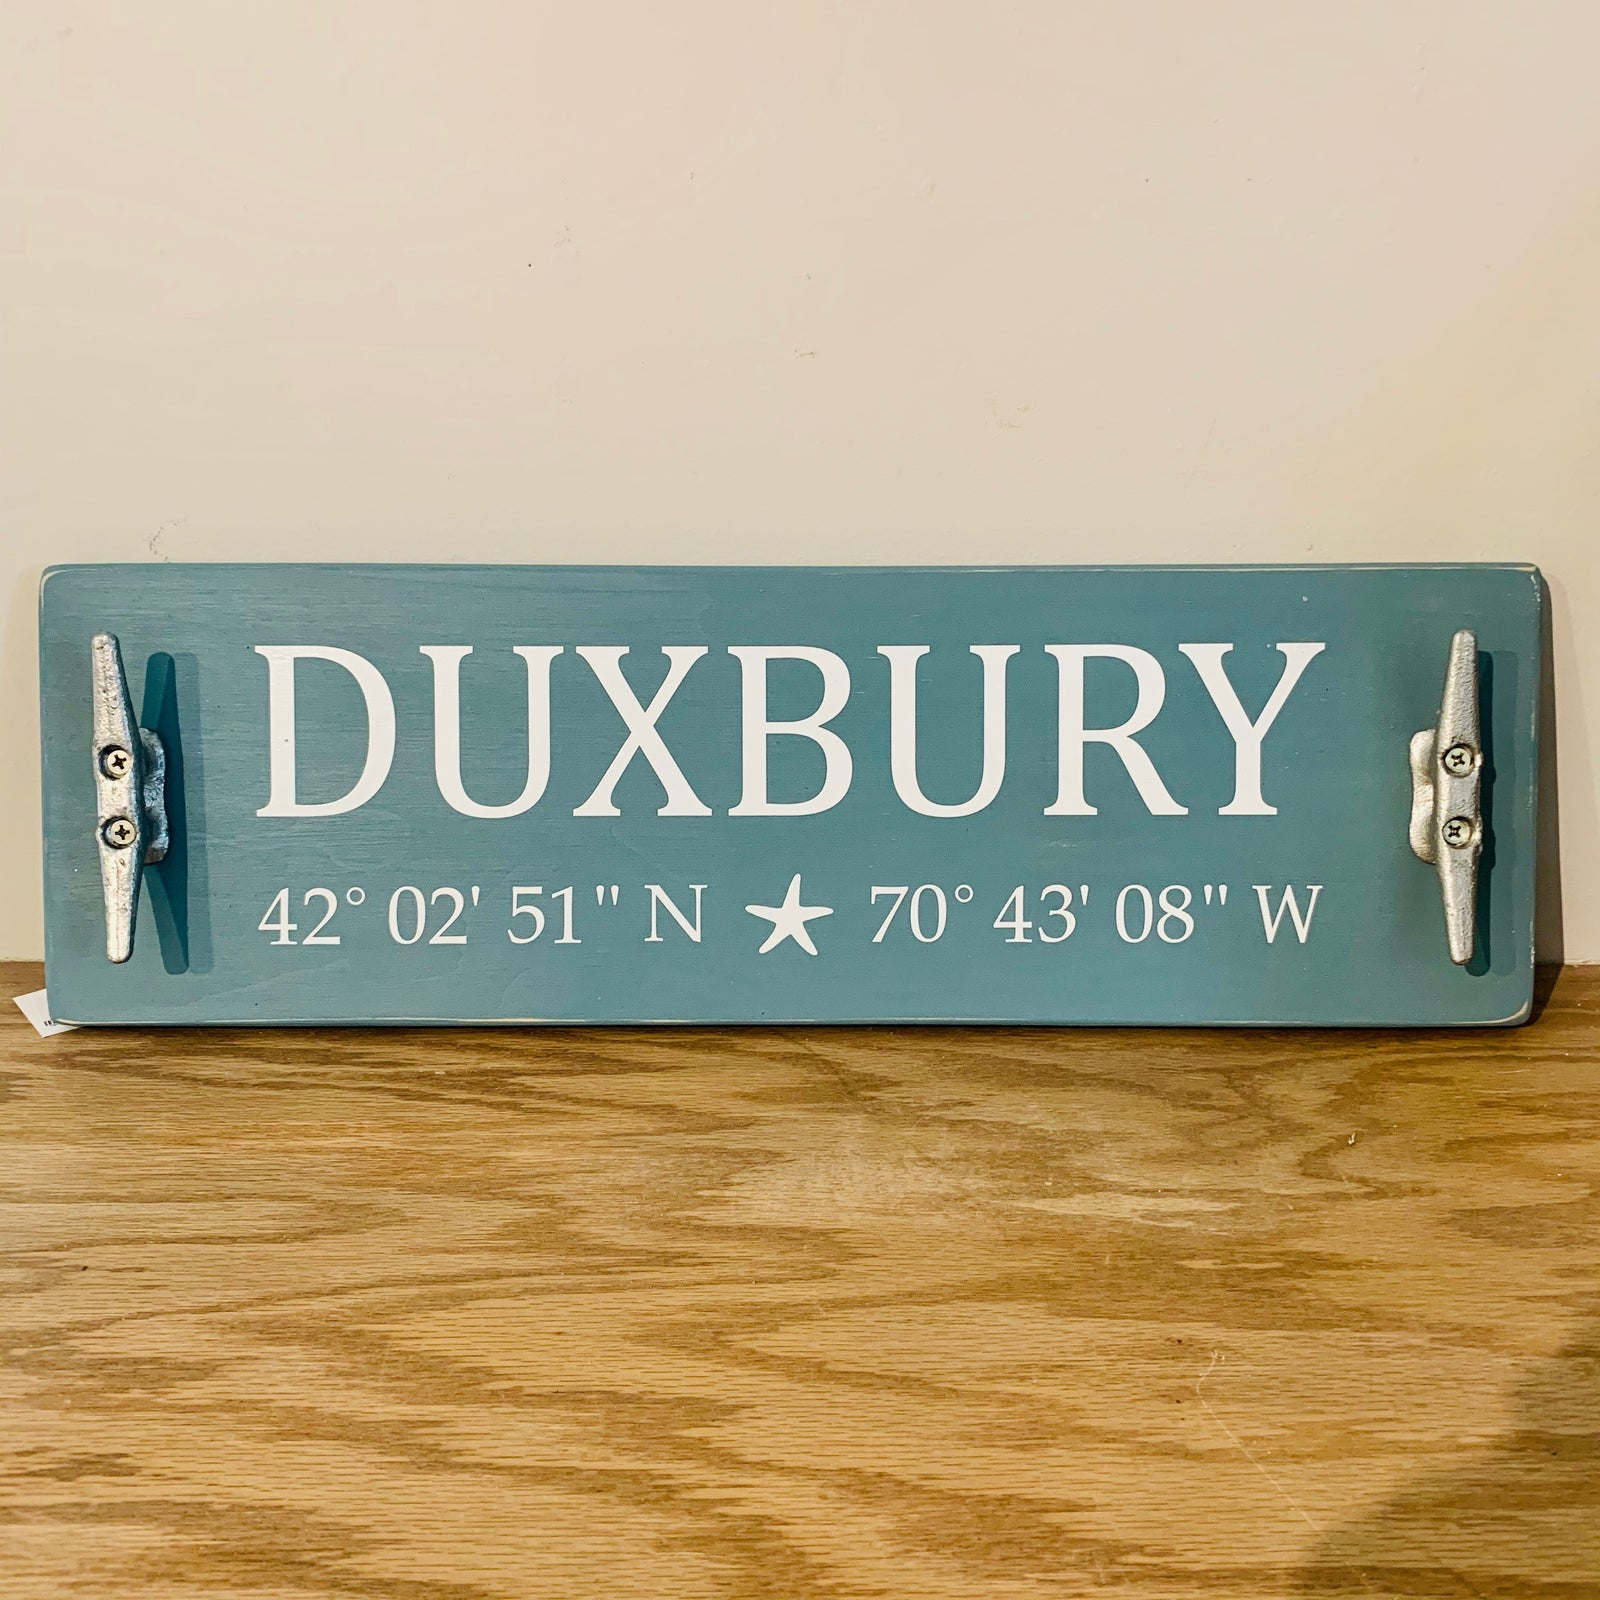 Duxbury boat cleat signs